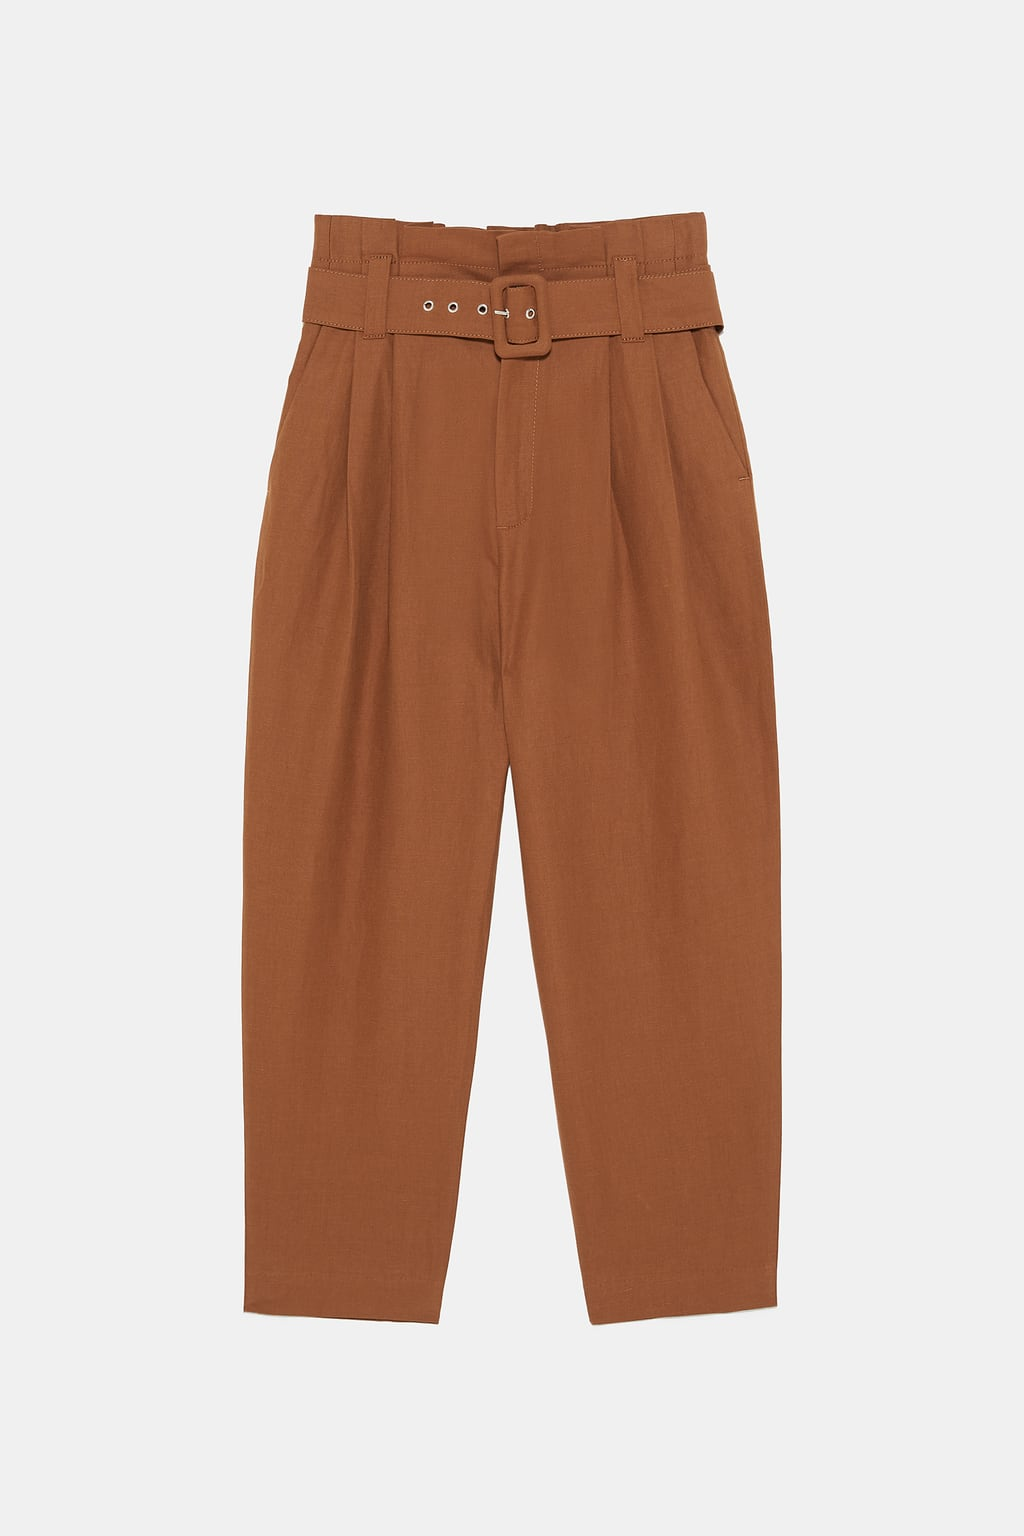 pantalon marron zara